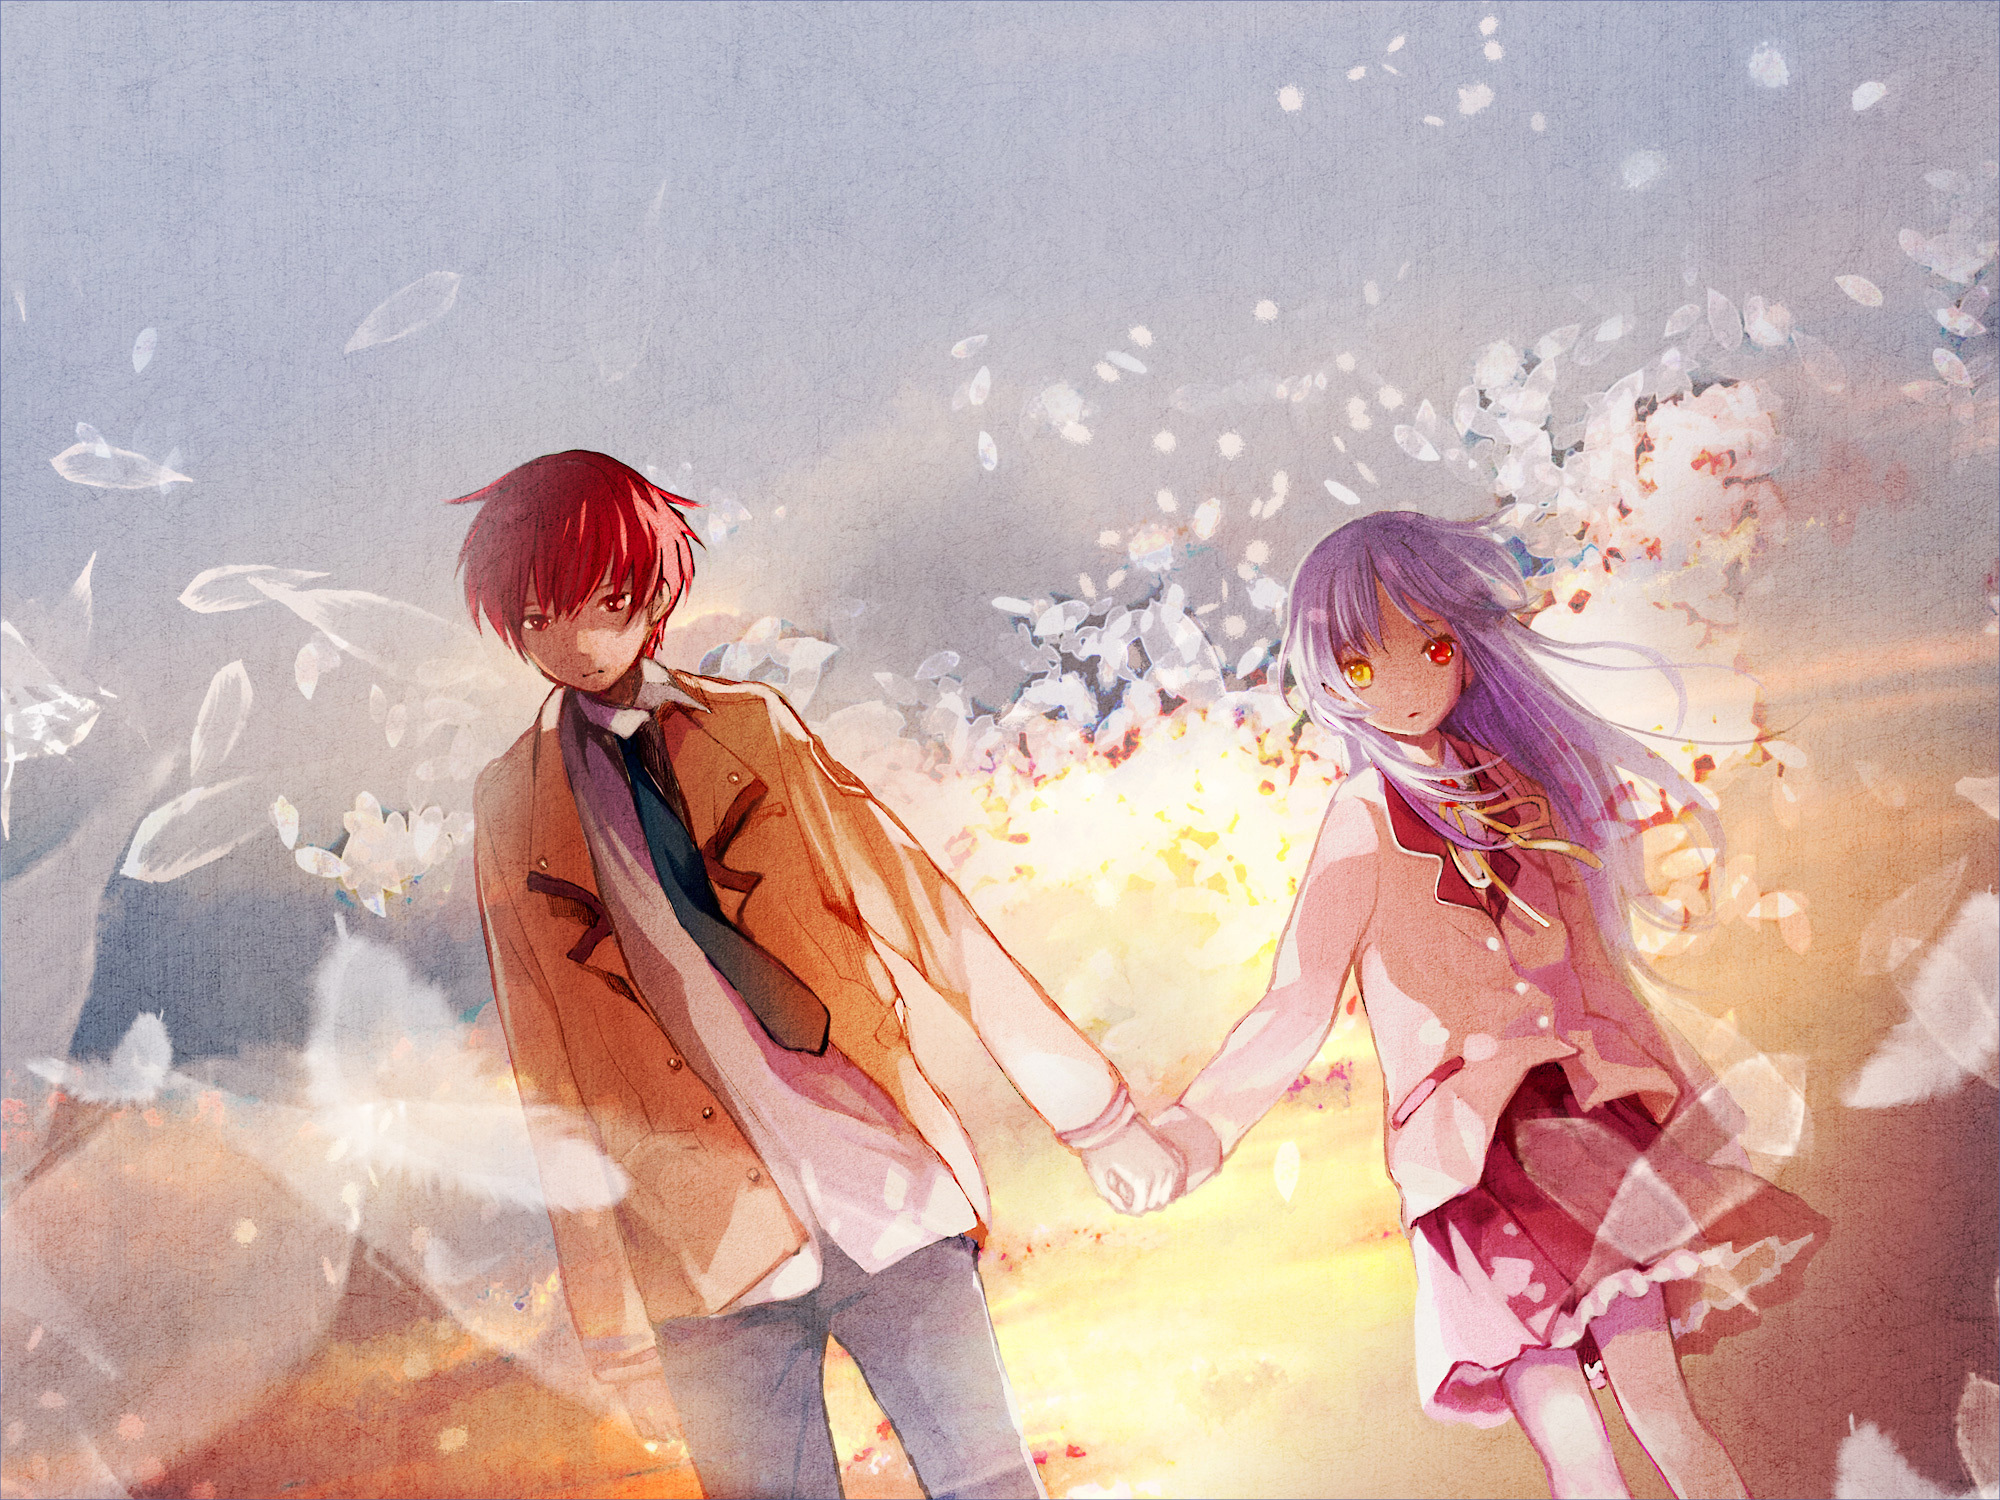 Angel beats zerochan anime image board angel beats download angel beats image voltagebd Gallery